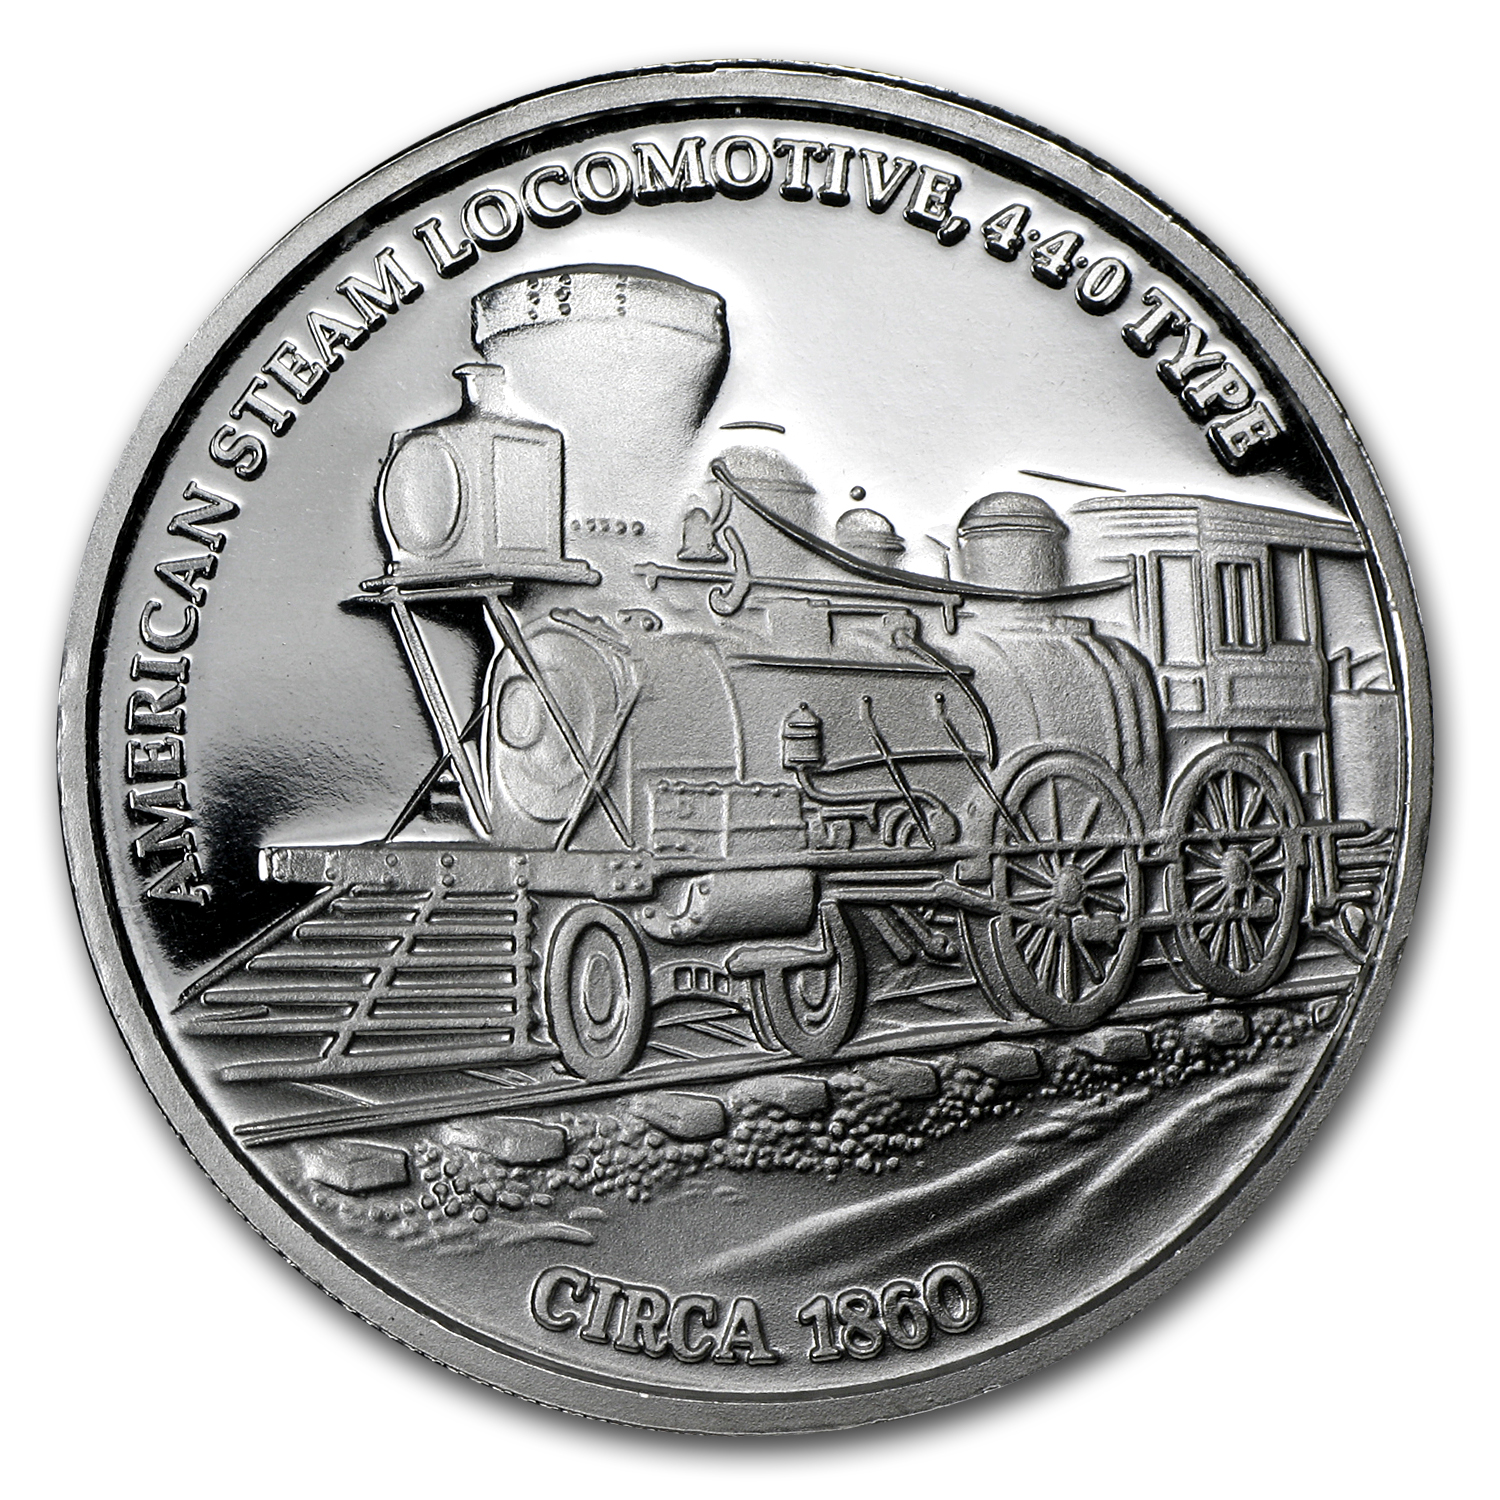 (5) 1 oz Silver Rounds - Steam Locomotive (5 pc Set)